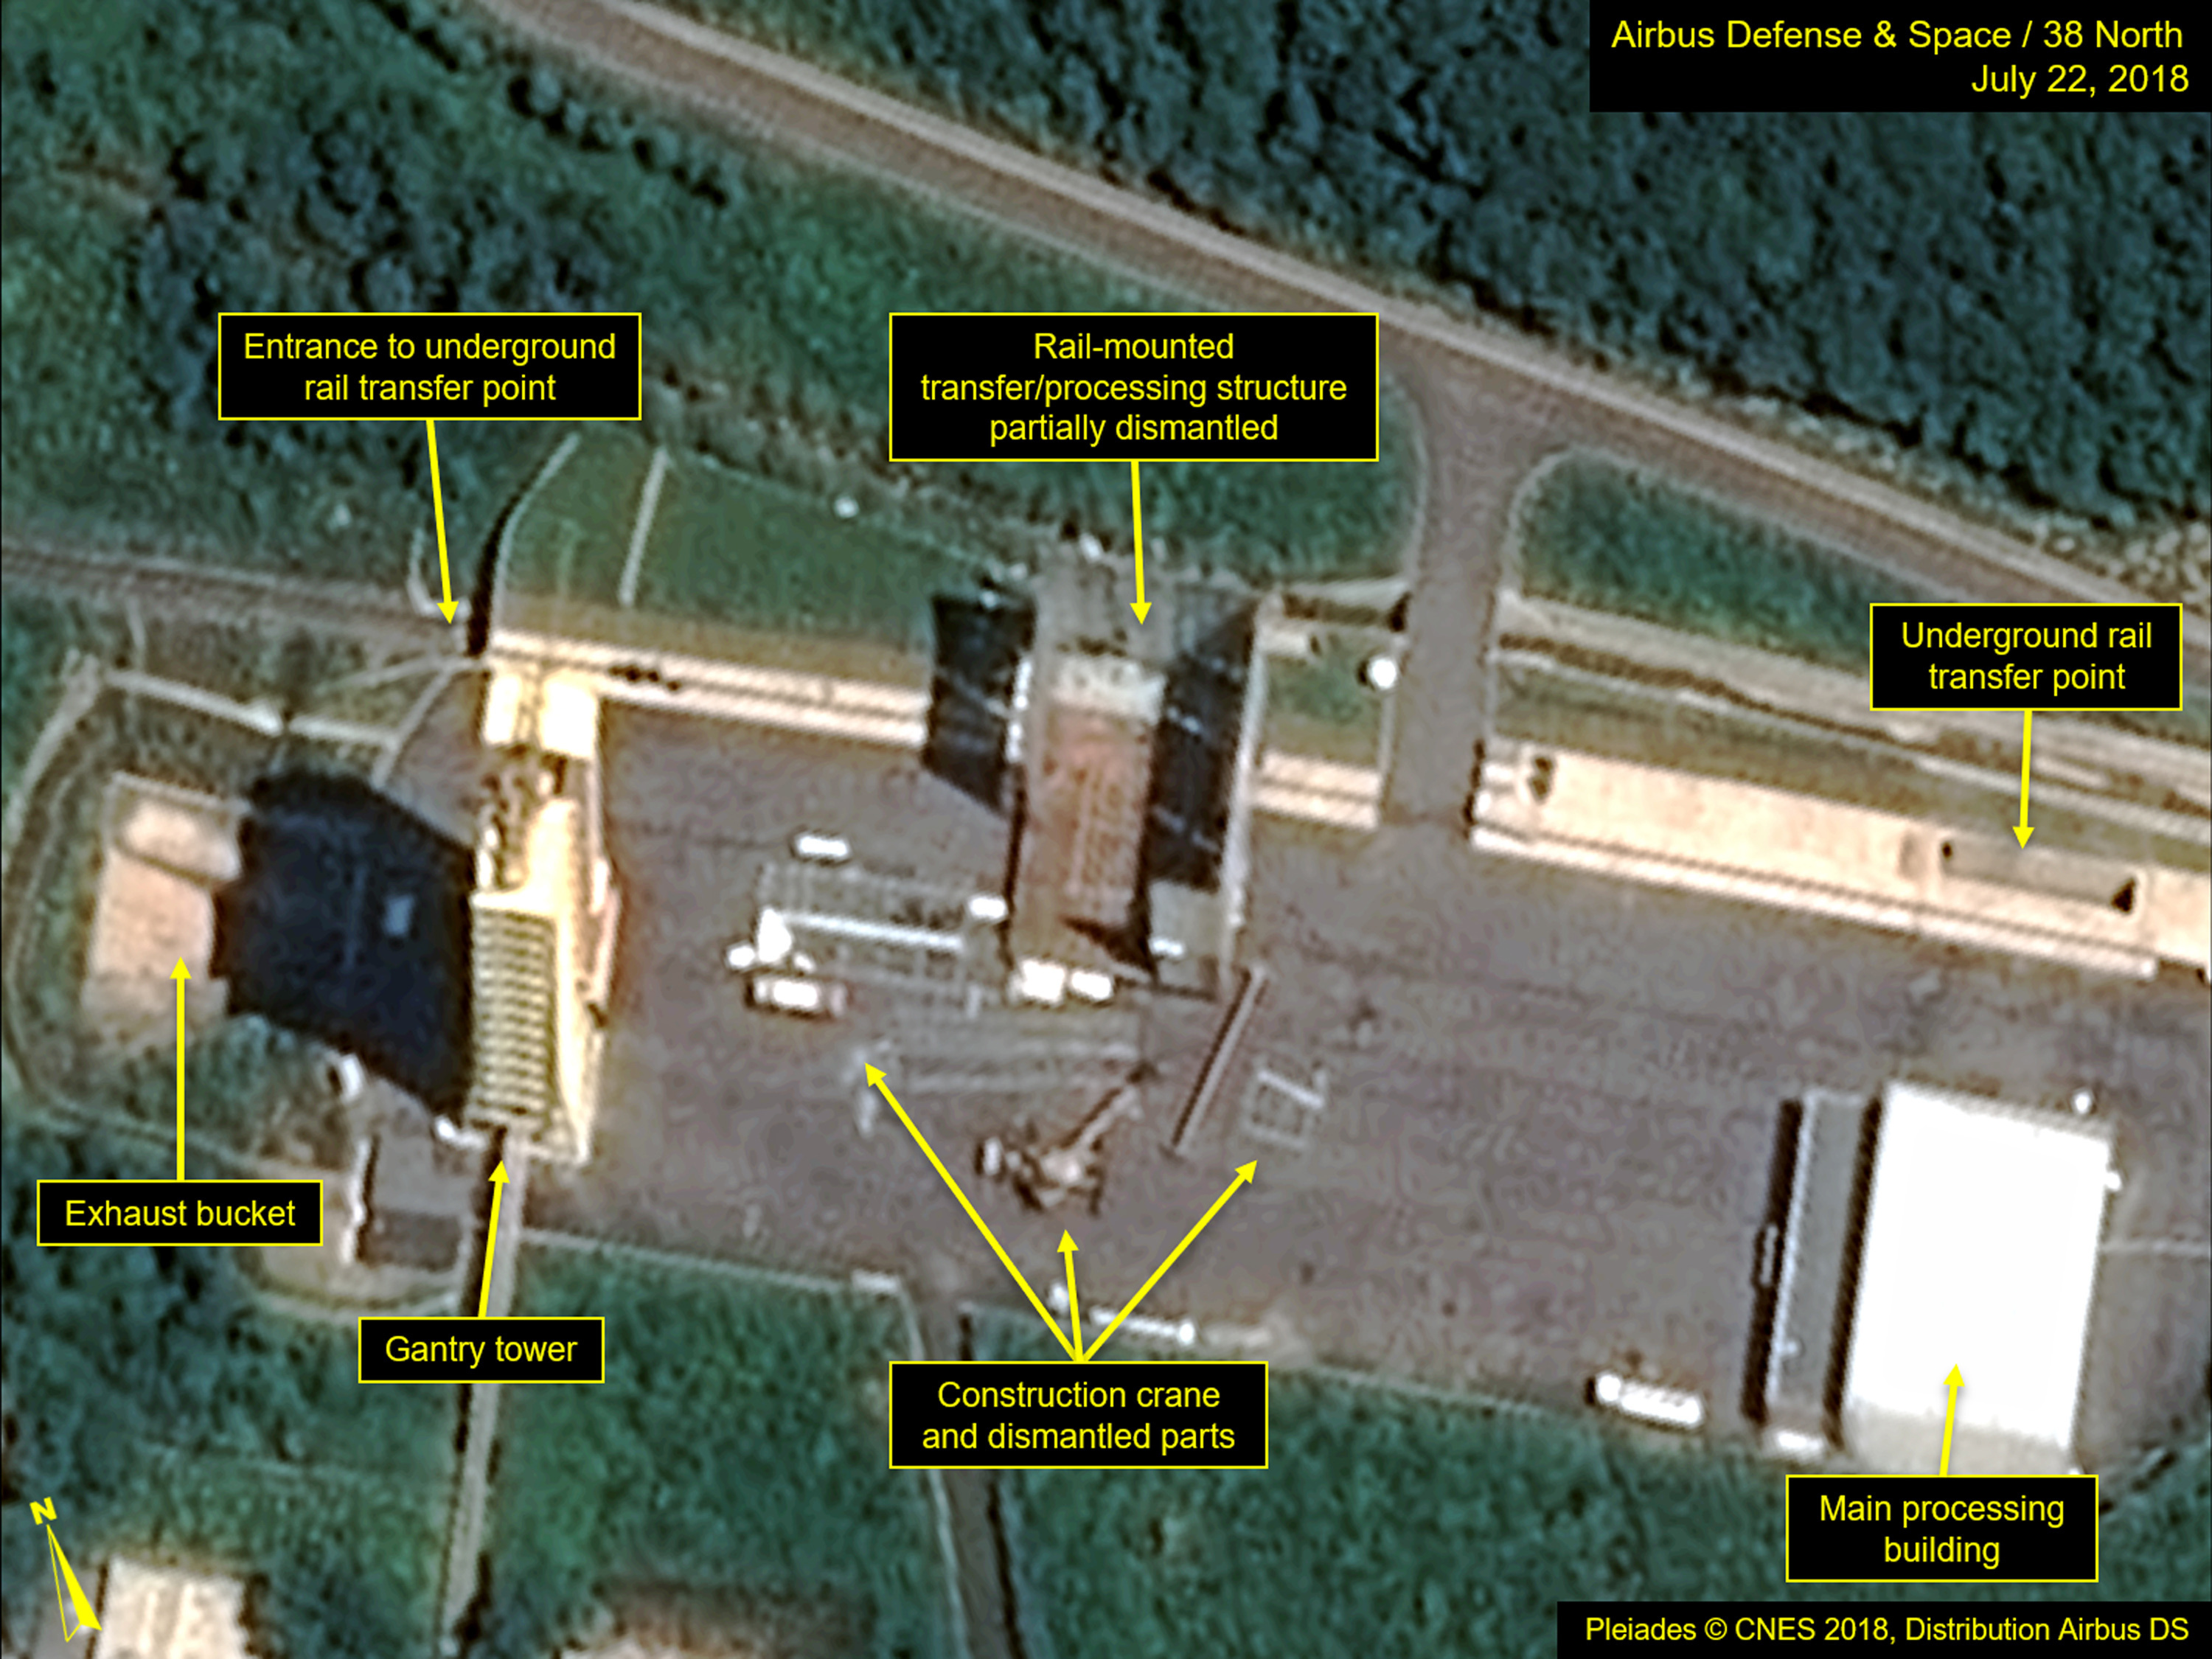 This July 22, 2018, satellite image released and annotated by 38 North on Monday, July 23, shows what the U.S. research group says is the partial dismantling of the rail-mounted transfer structure, at center, at the Sohae launch site in North Korea. ...